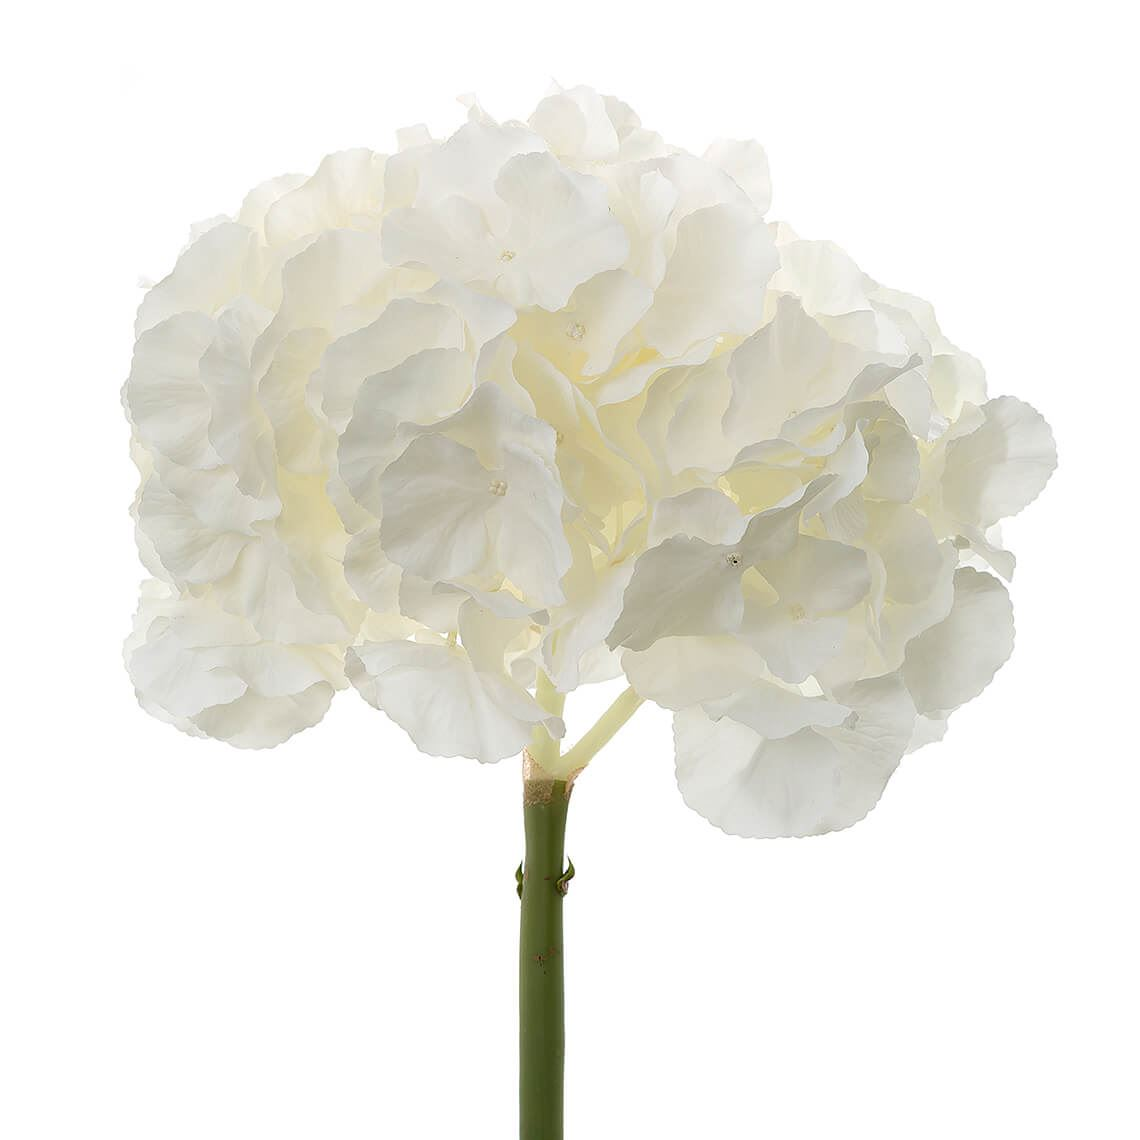 Flora Hydrangea Stem Artificial Flower Size W 22cm x D 22cm x H 54cm in White Plastic/Polyester Freedom by Freedom, a Plants for sale on Style Sourcebook